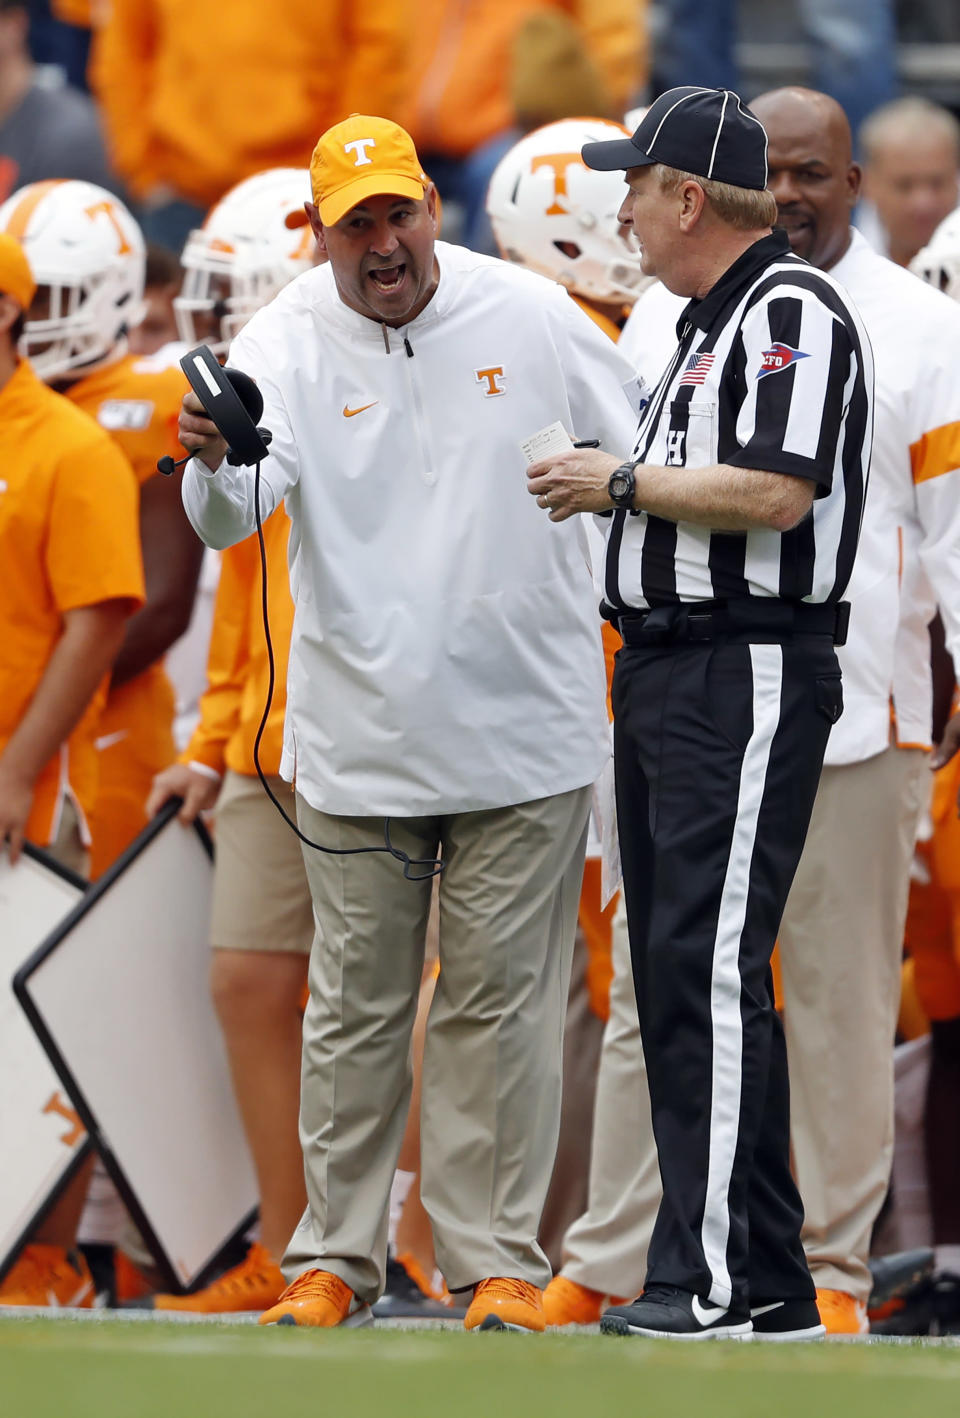 Tennessee head coach Jeremy Pruitt yells at an official during the first half of an NCAA college football game against Mississippi State, Saturday, Oct. 12, 2019, in Knoxville, Tenn. (AP Photo/Wade Payne)